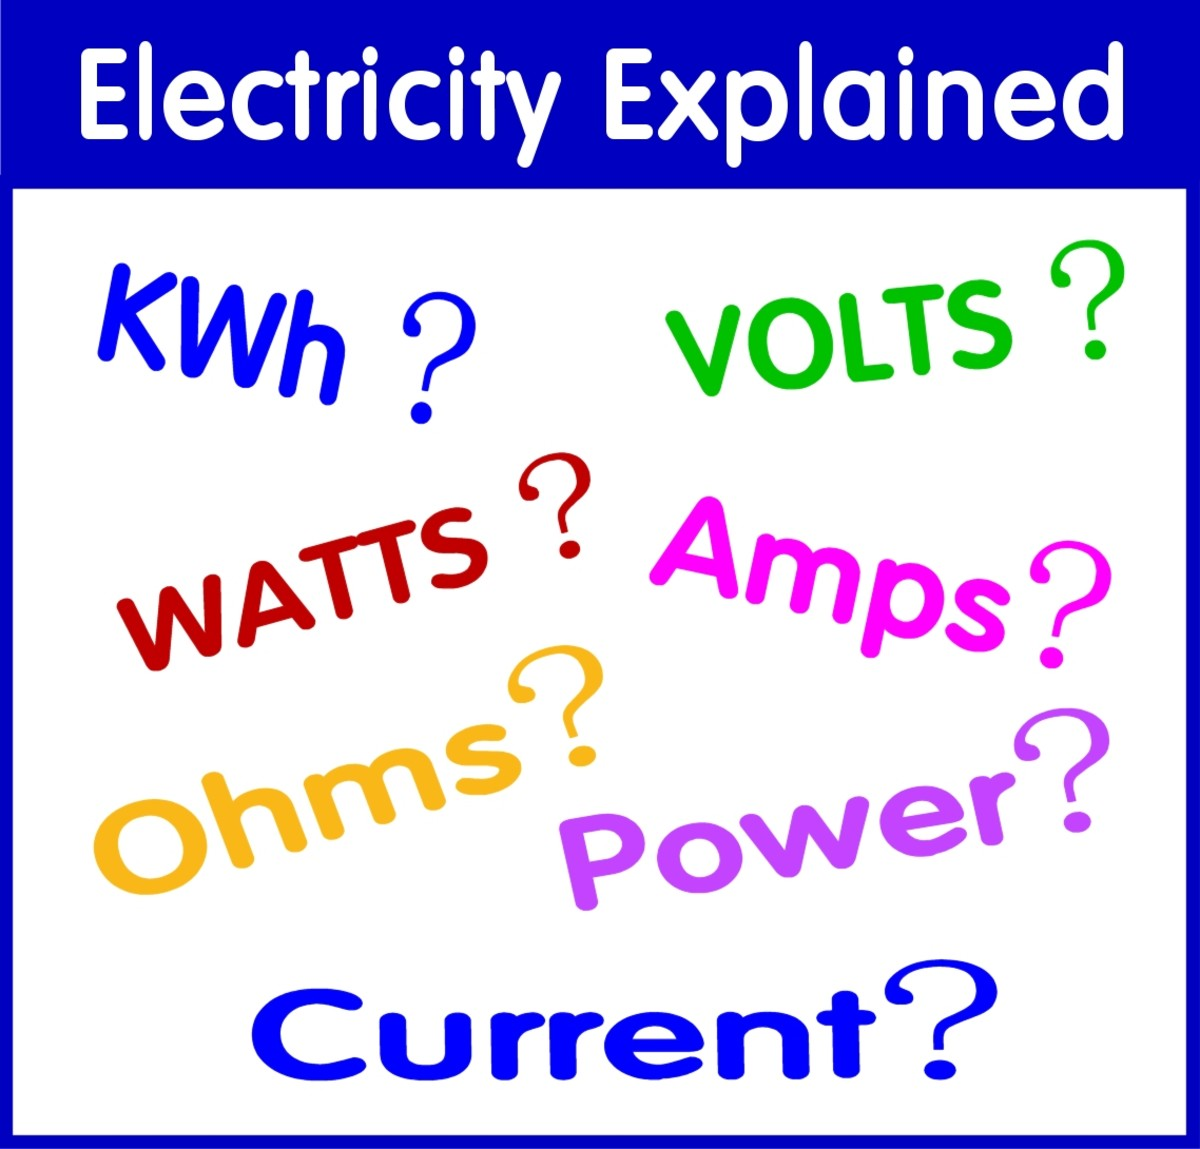 understanding electricity: volts, amps, watts, kilowatt hours (kwh), ohms  and electrical appliances | owlcation